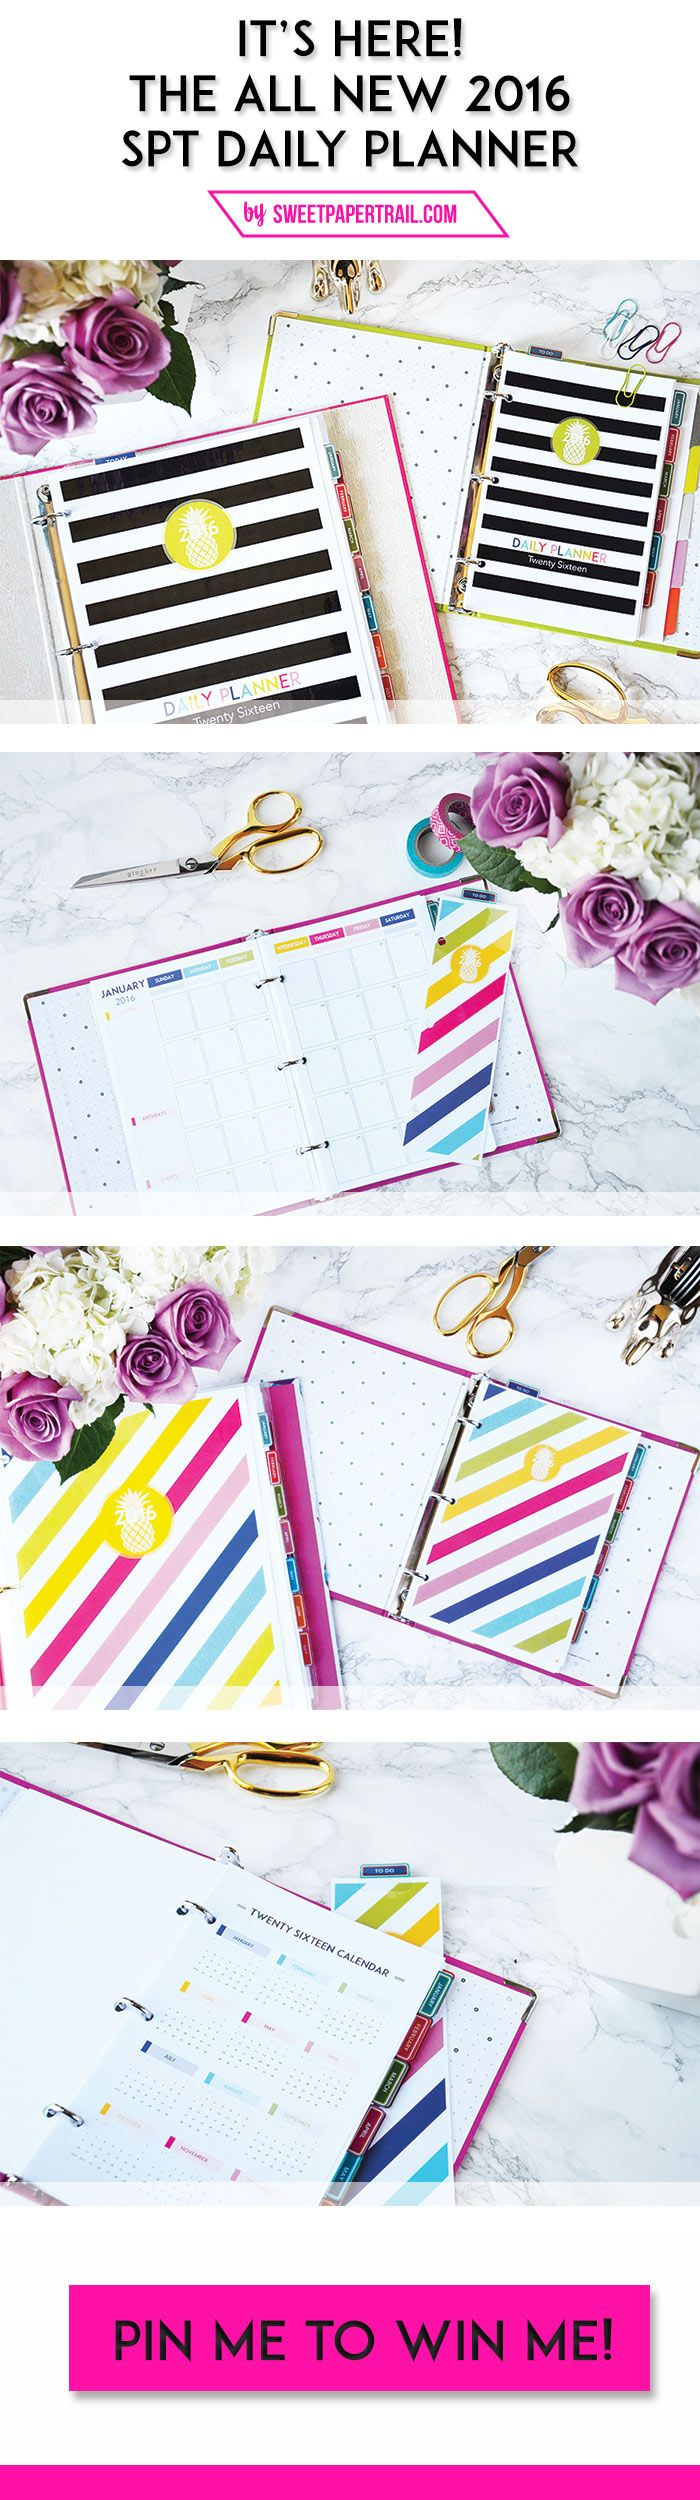 Pin me to WIN me! The 2016 SPT Daily Planner